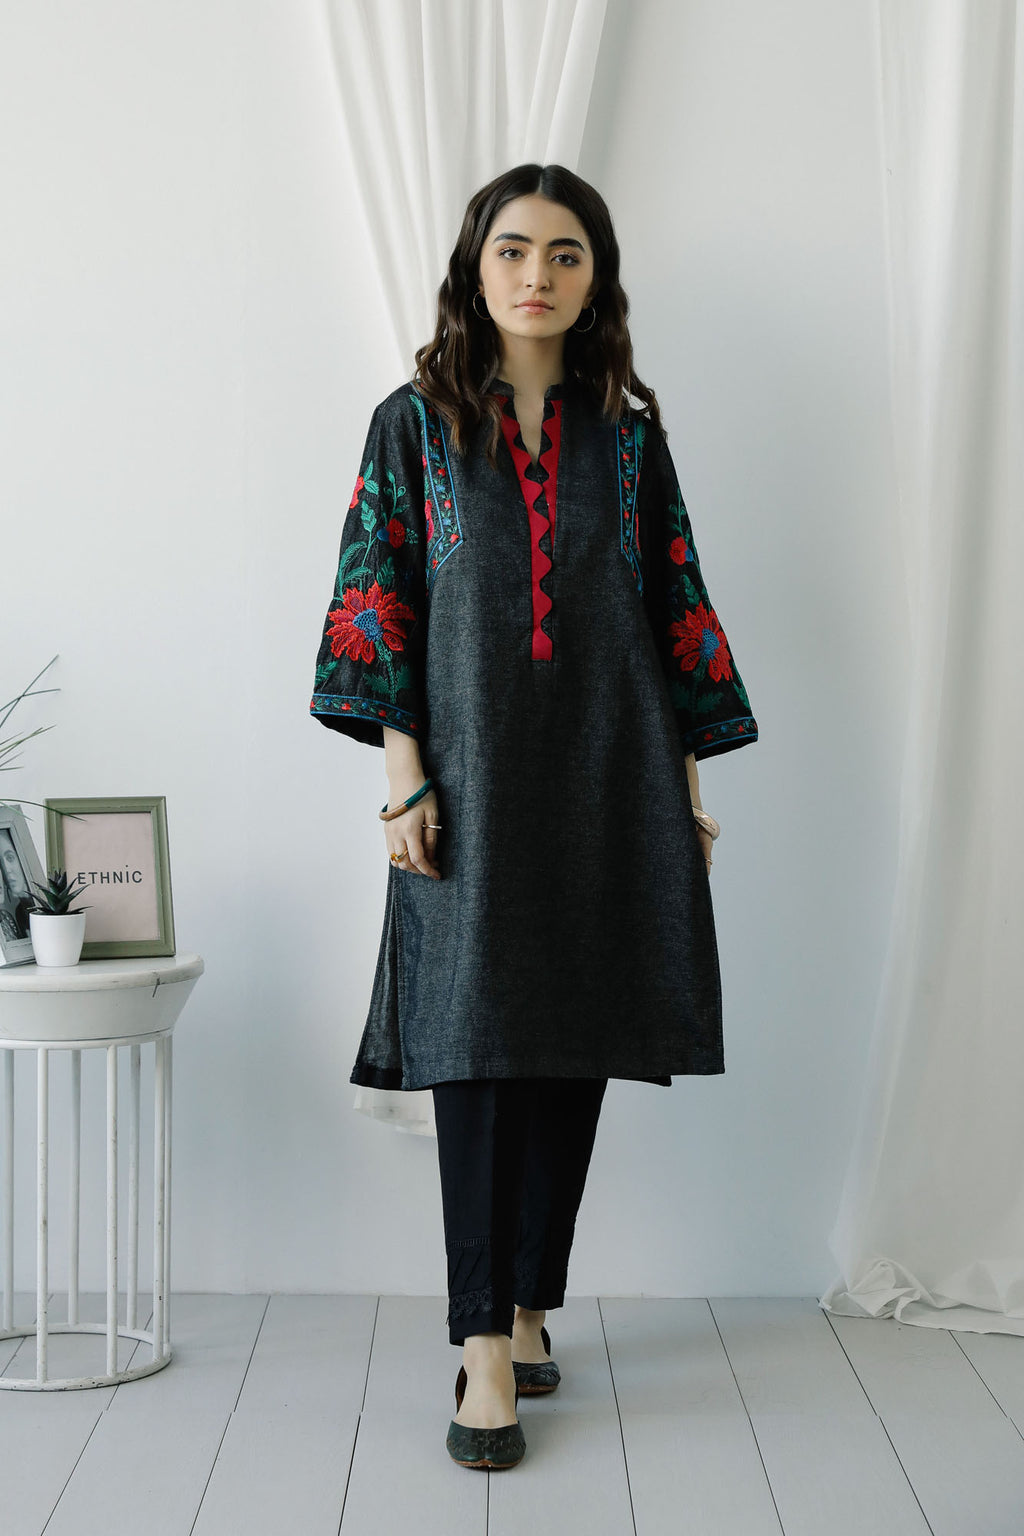 EMBROIDERED SHIRT (WTC401019) - Ethnic by Outfitters